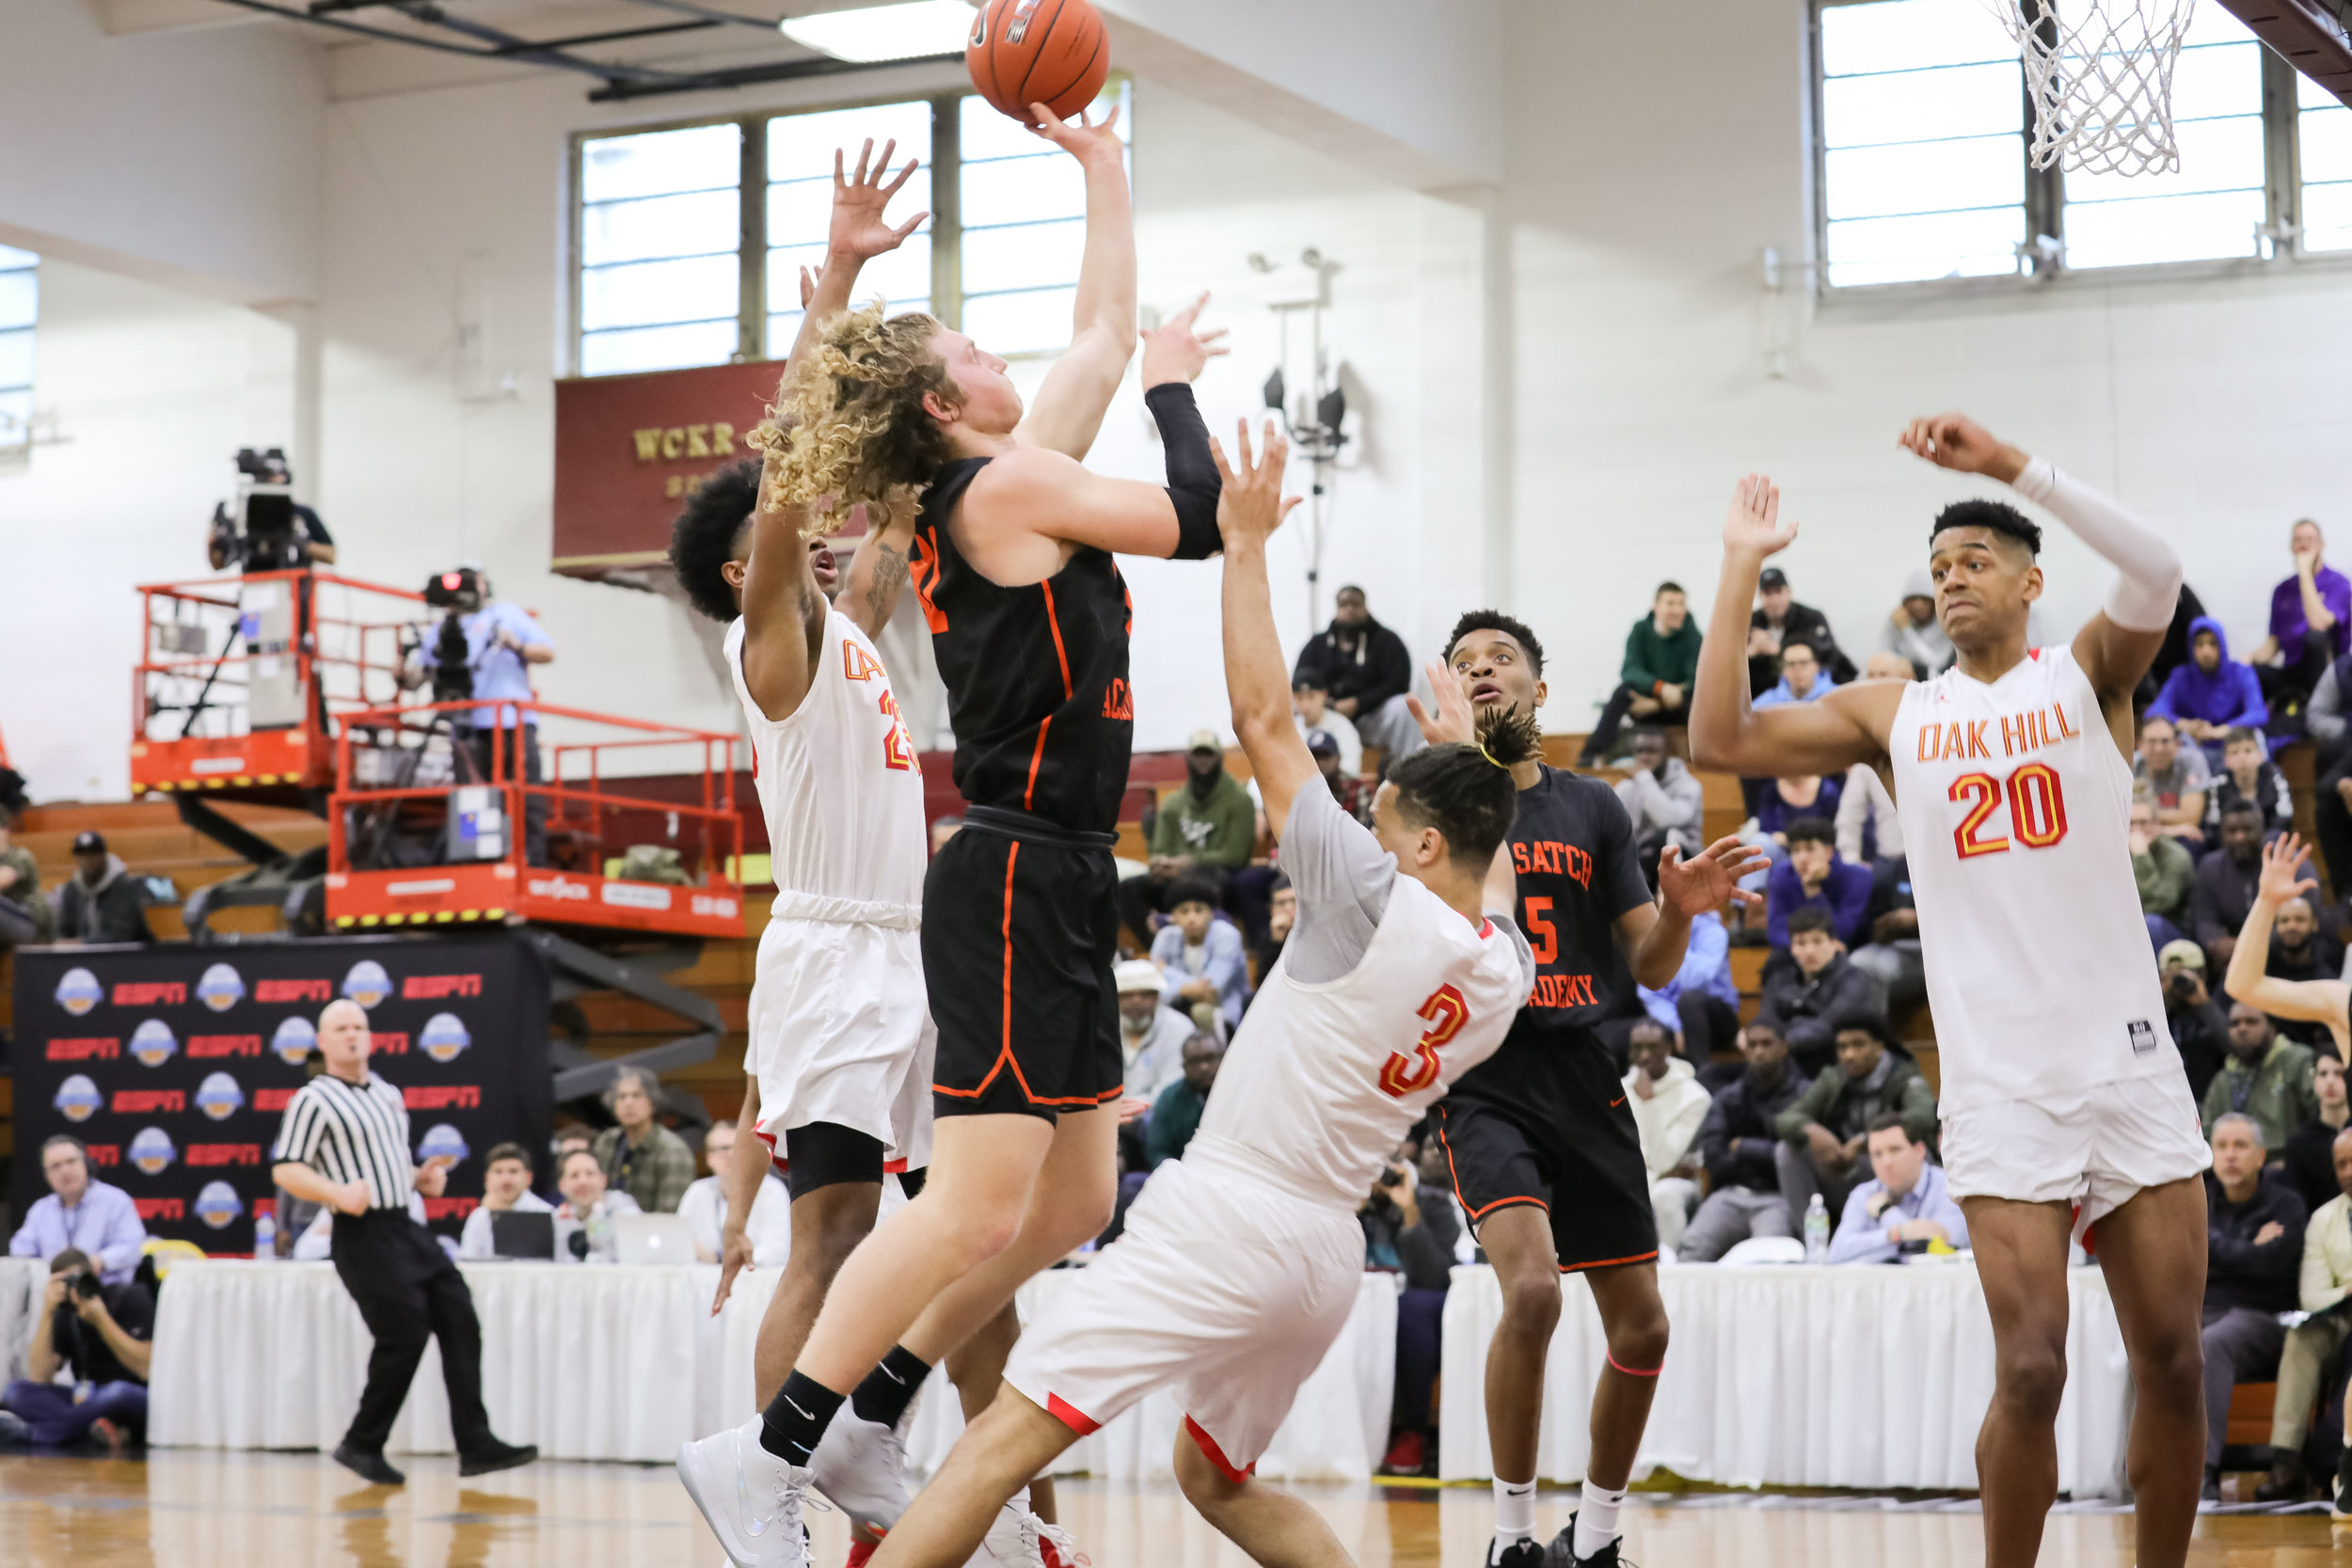 BBall_Geico_Nationals_2019 (24 of 59).jpg